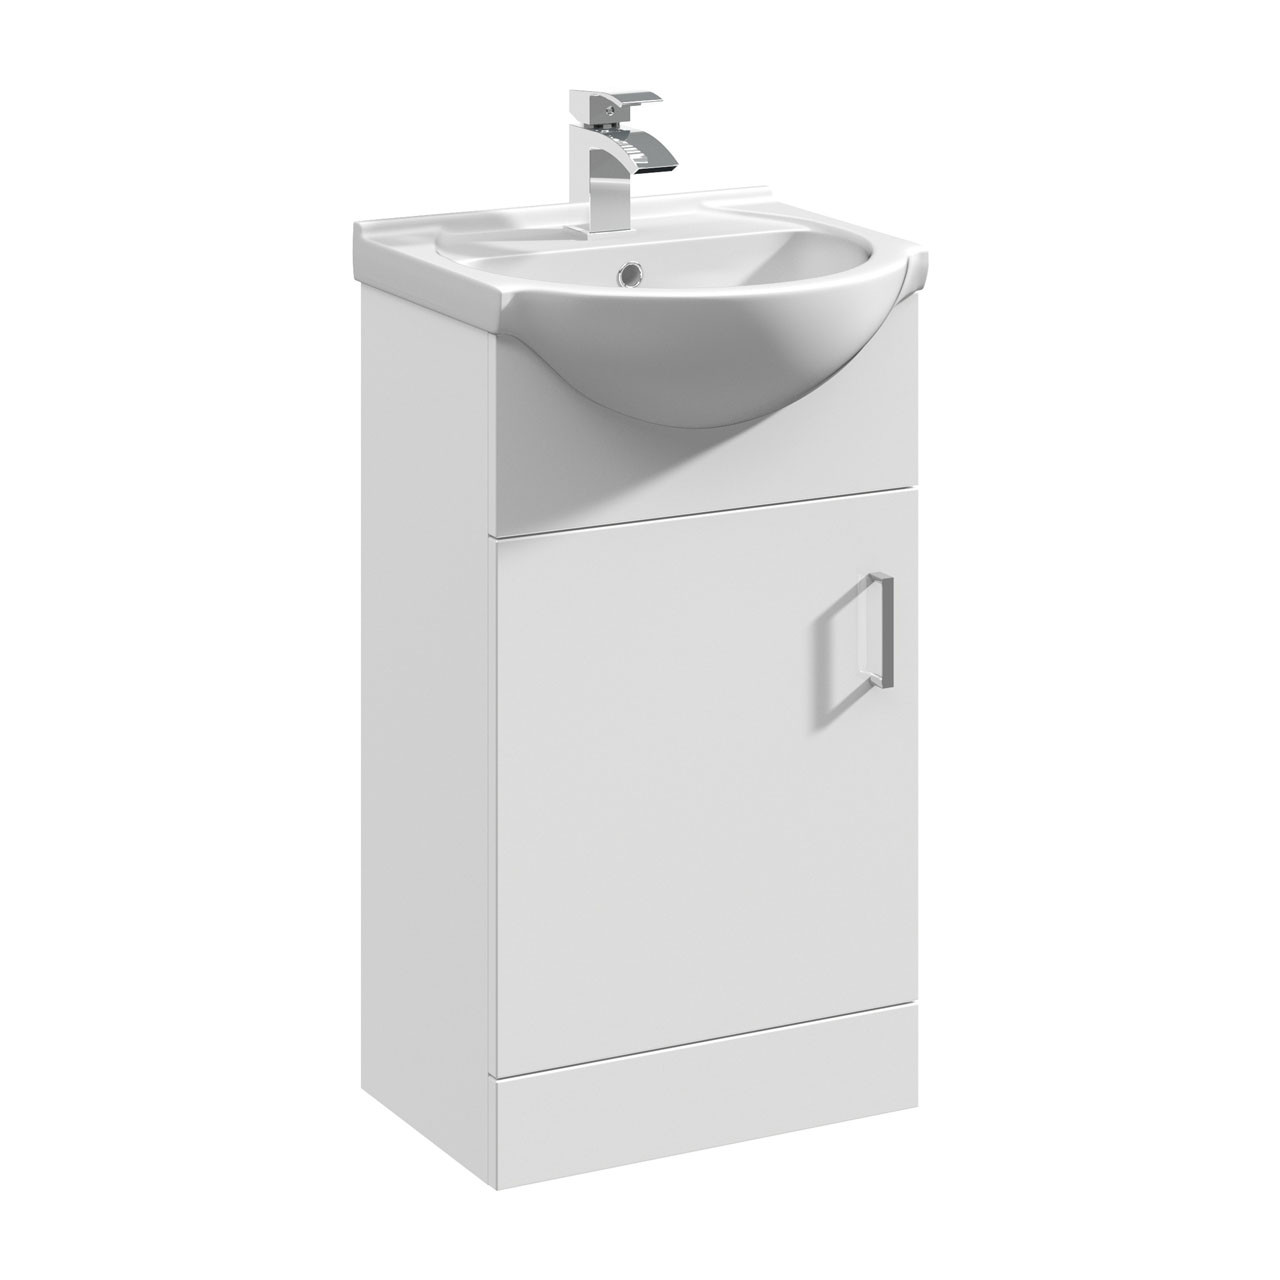 Nuie Mayford Gloss White 450mm Vanity Unit and Curved Basin with 1 Tap Hole - VTY450